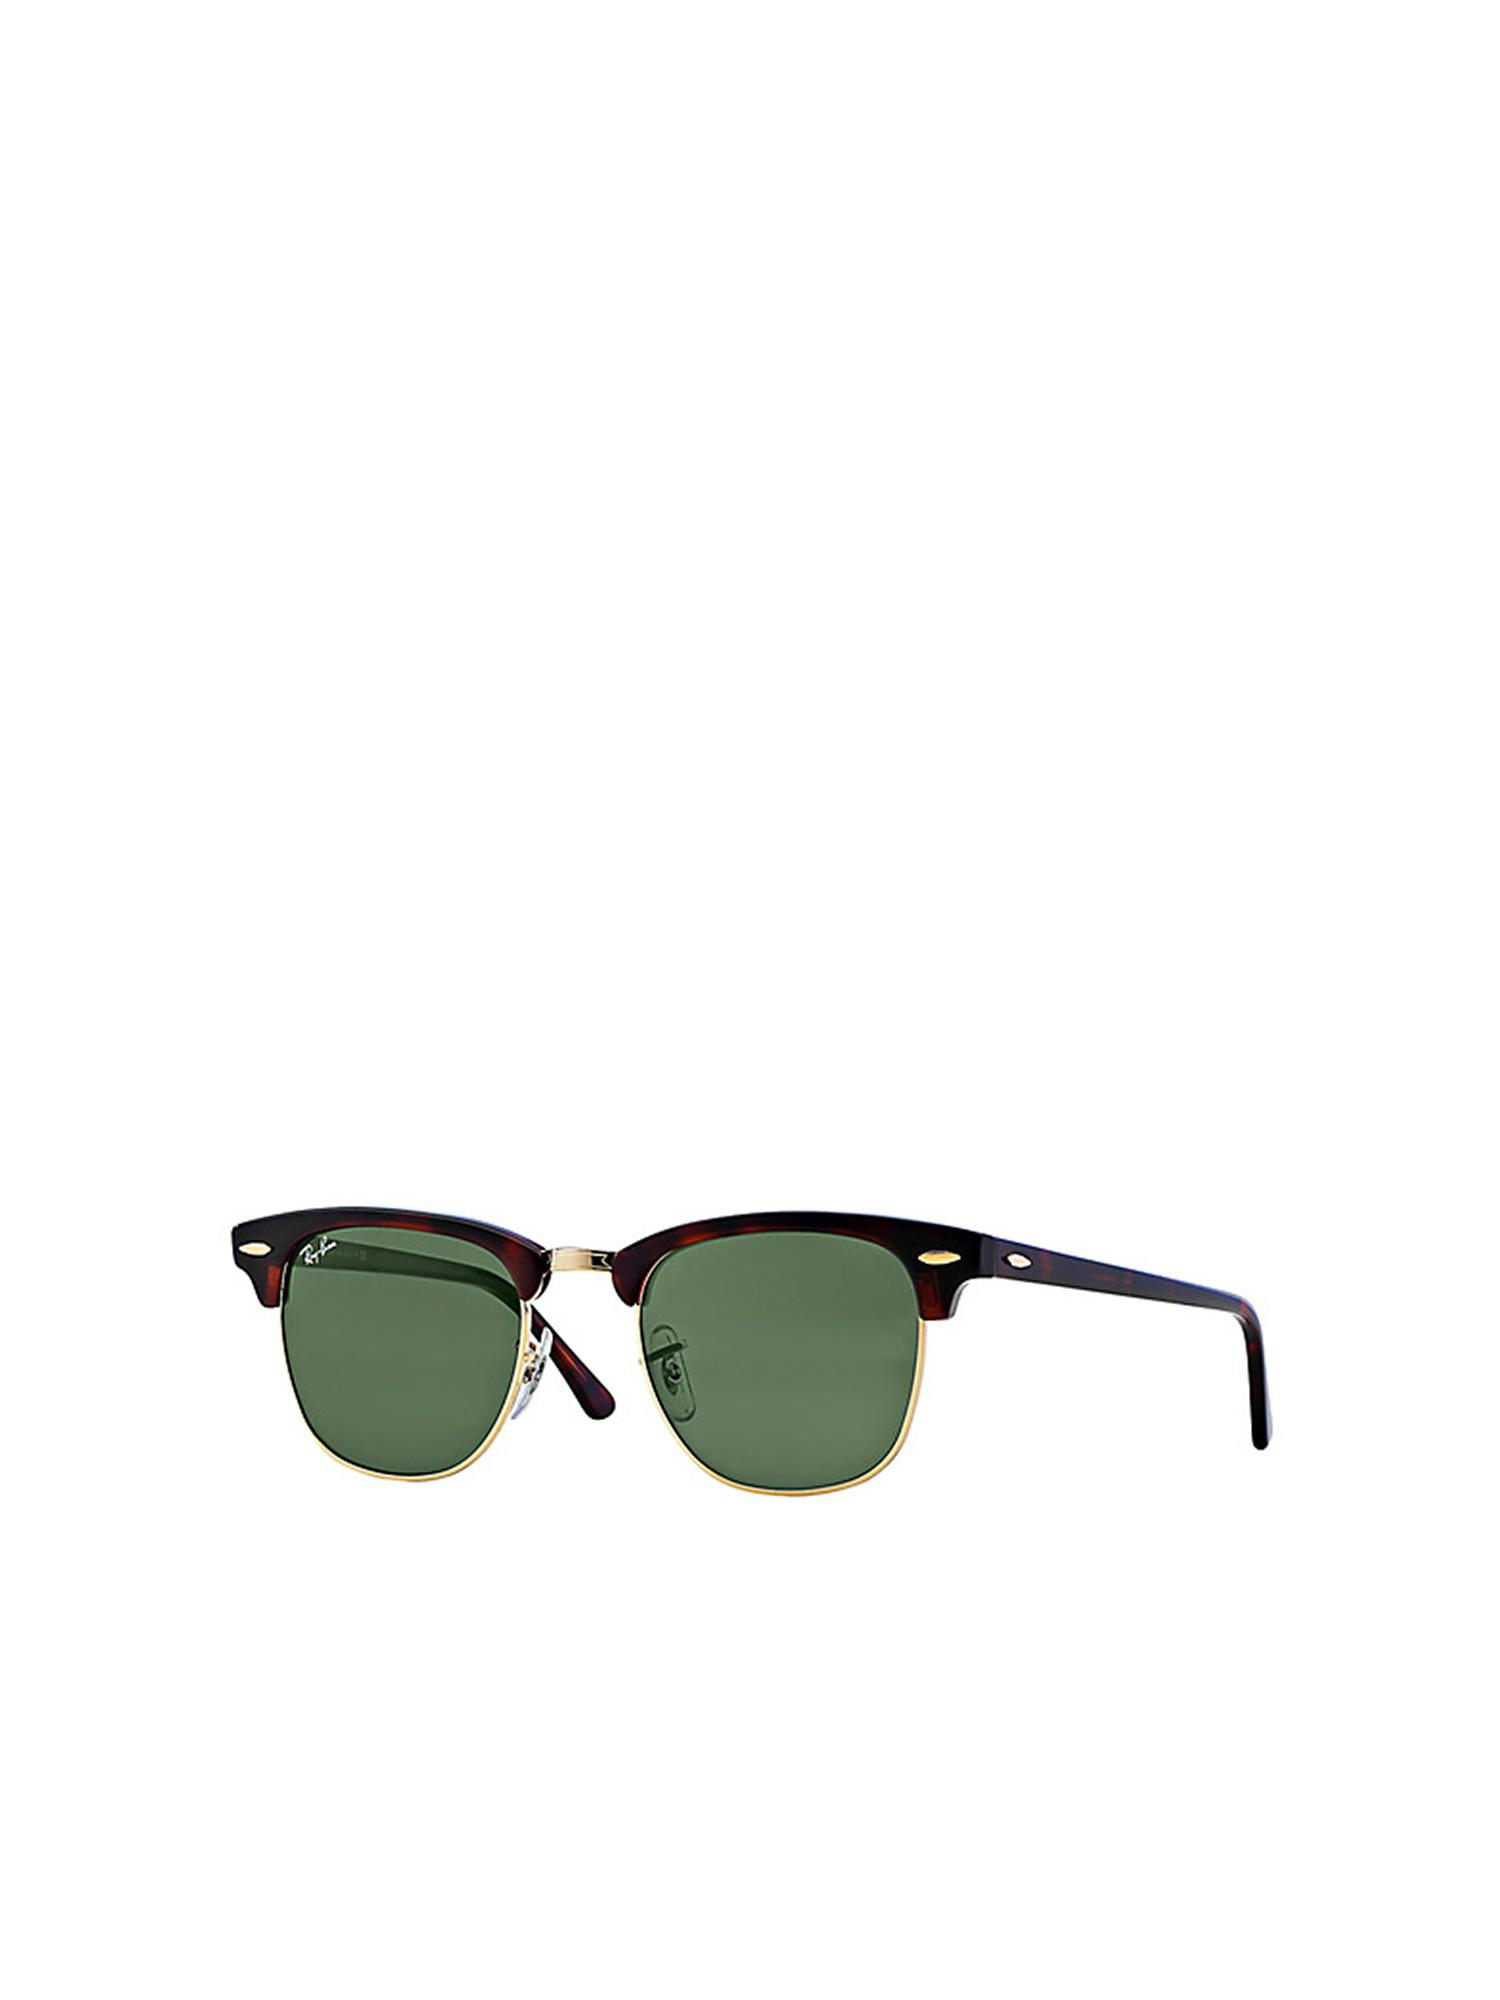 089afa58e5 Ray Ban Clubmaster Sunglasses Rb3016 W0366 49 « One More Soul